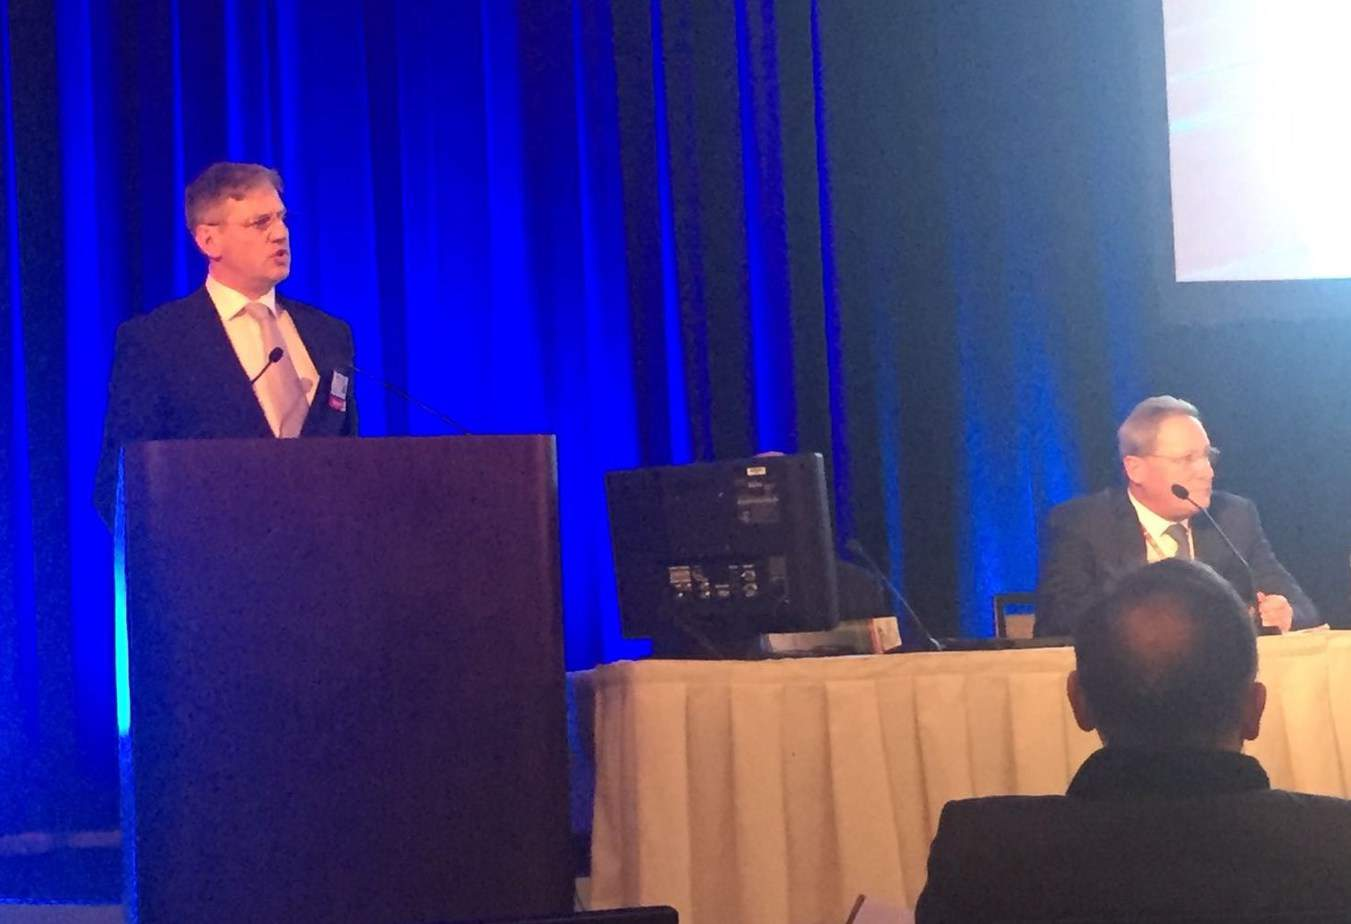 Prof Mark Whiteley talking about varicose veins and pelvic congestion at Veith in New York Nov 2016